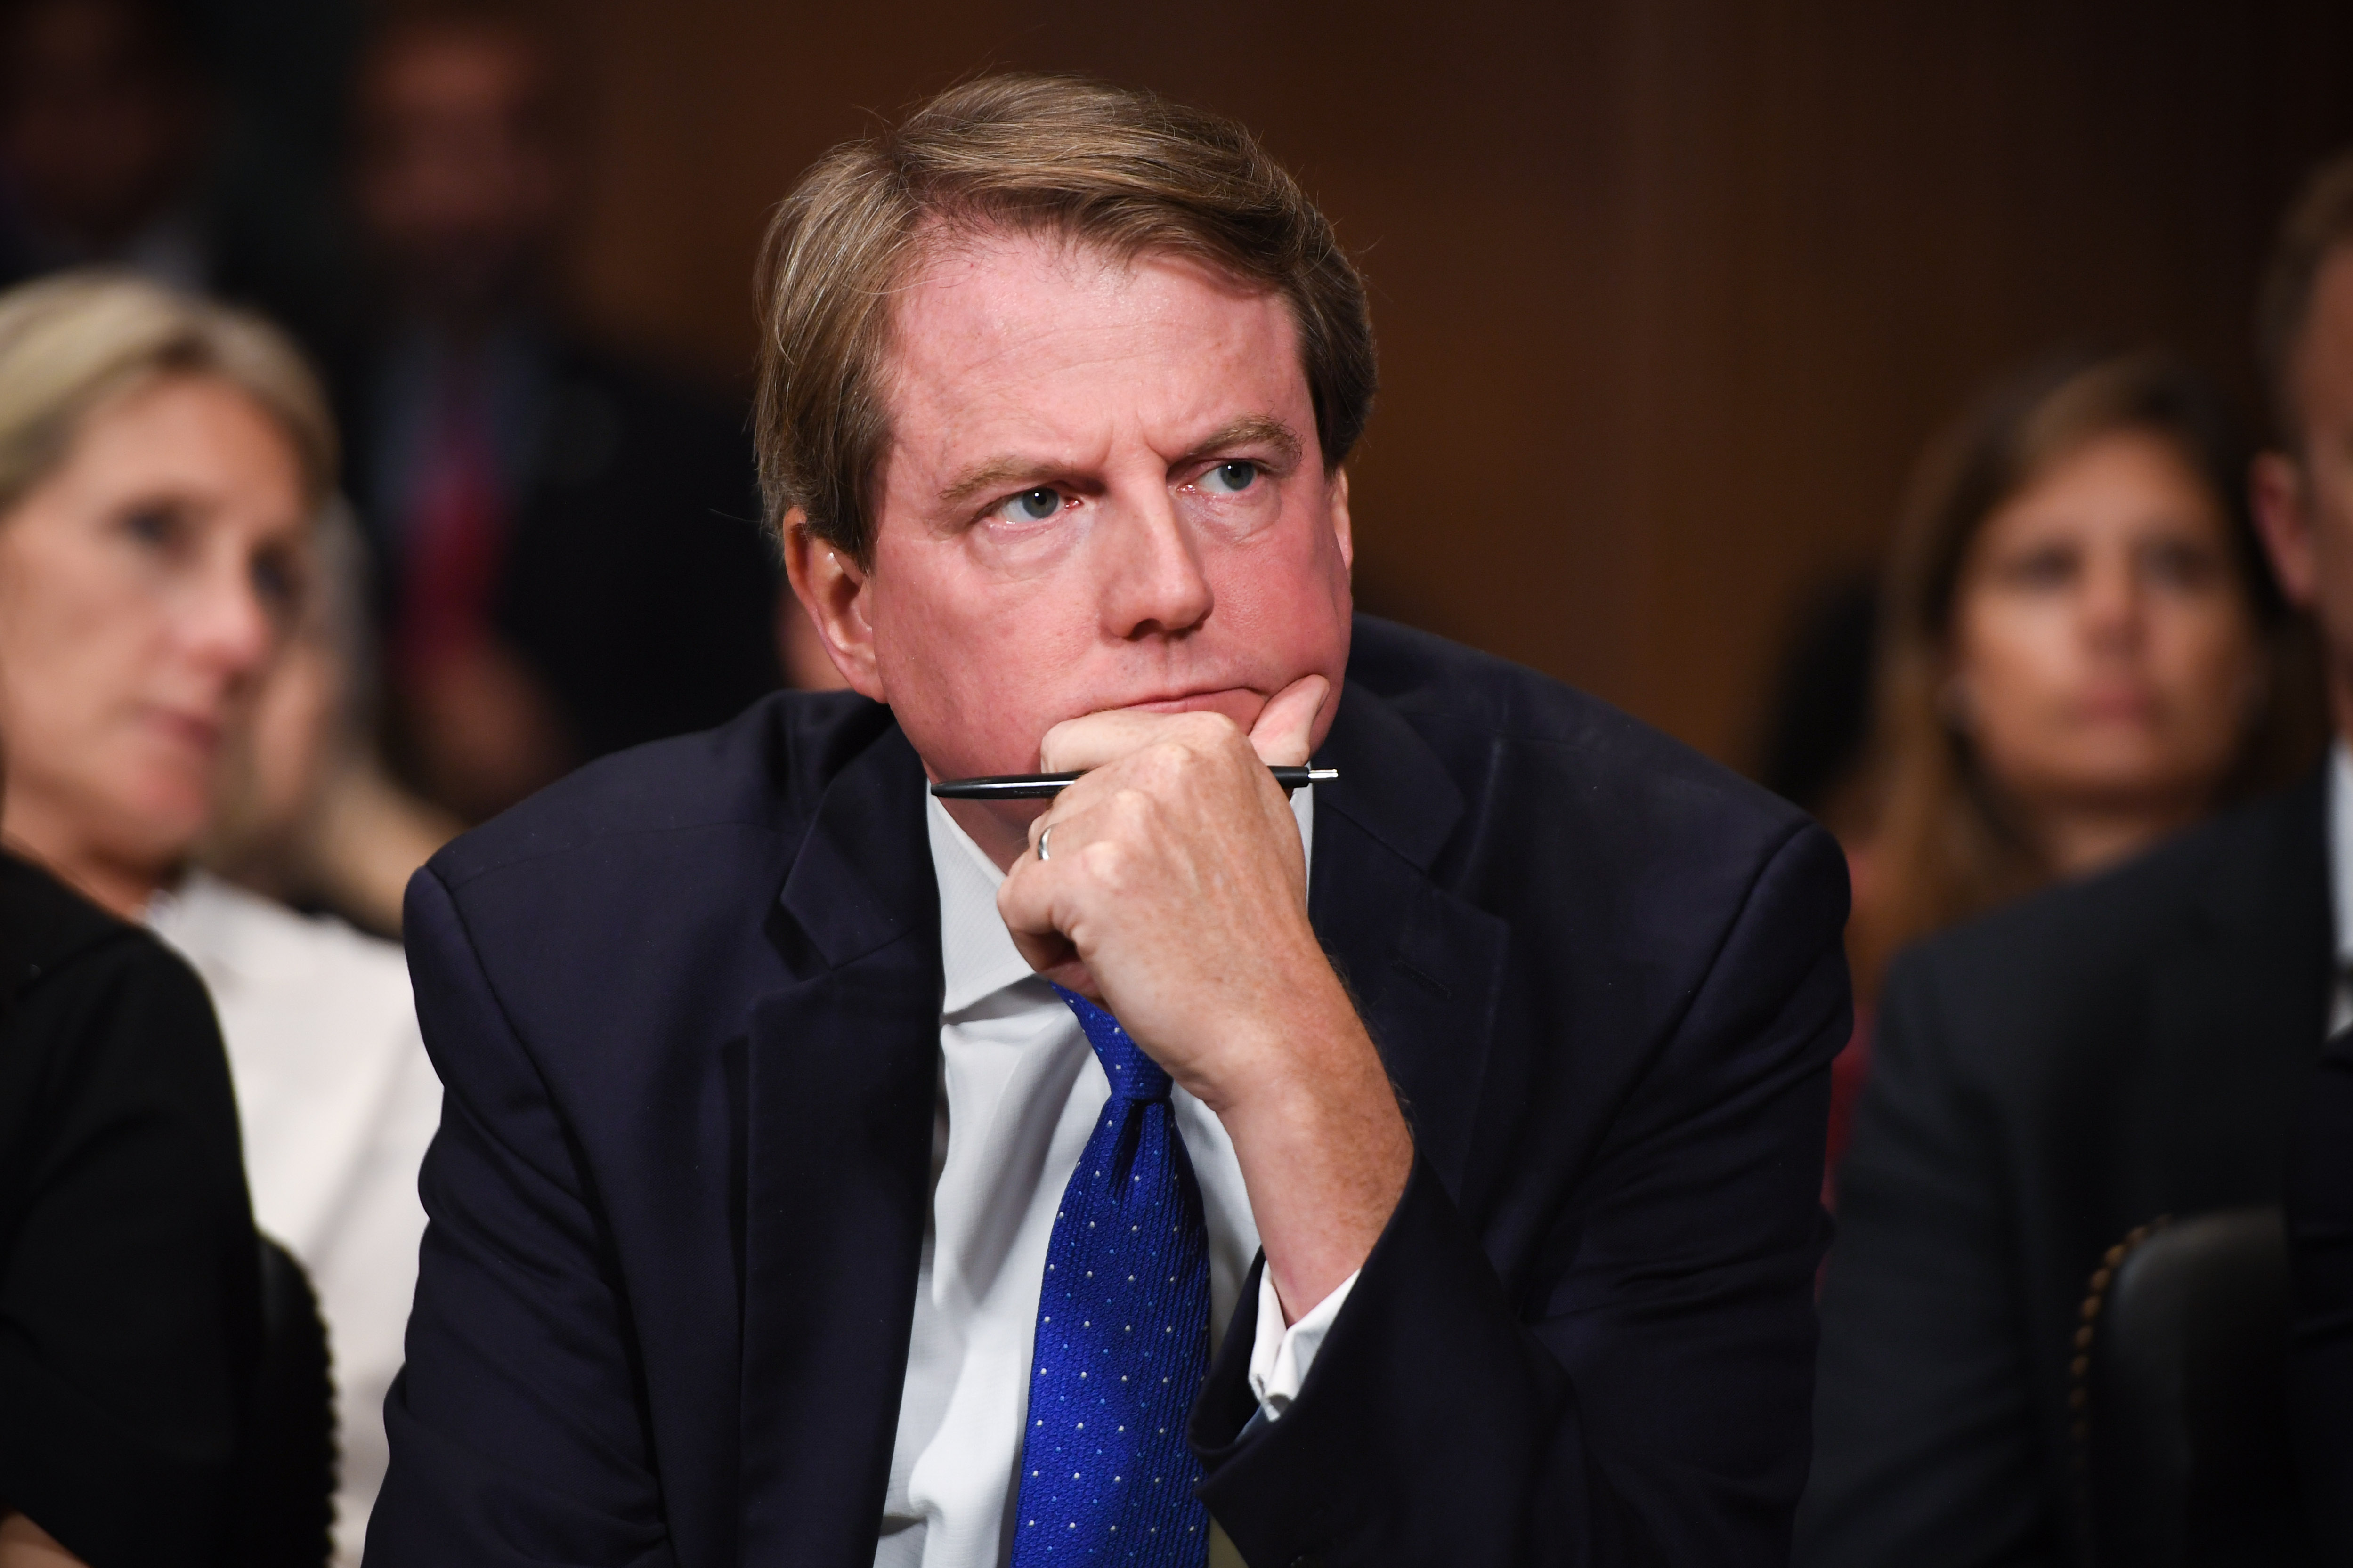 White House Counsel and Assistant to the President for U.S. President Donald Trump, Donald McGahn, listens as Supreme Court nominee Brett Kavanaugh testifies before the Senate Judiciary Committee on Capitol Hill on September 27, 2018. (Saul Loeb - Pool/Getty Images)